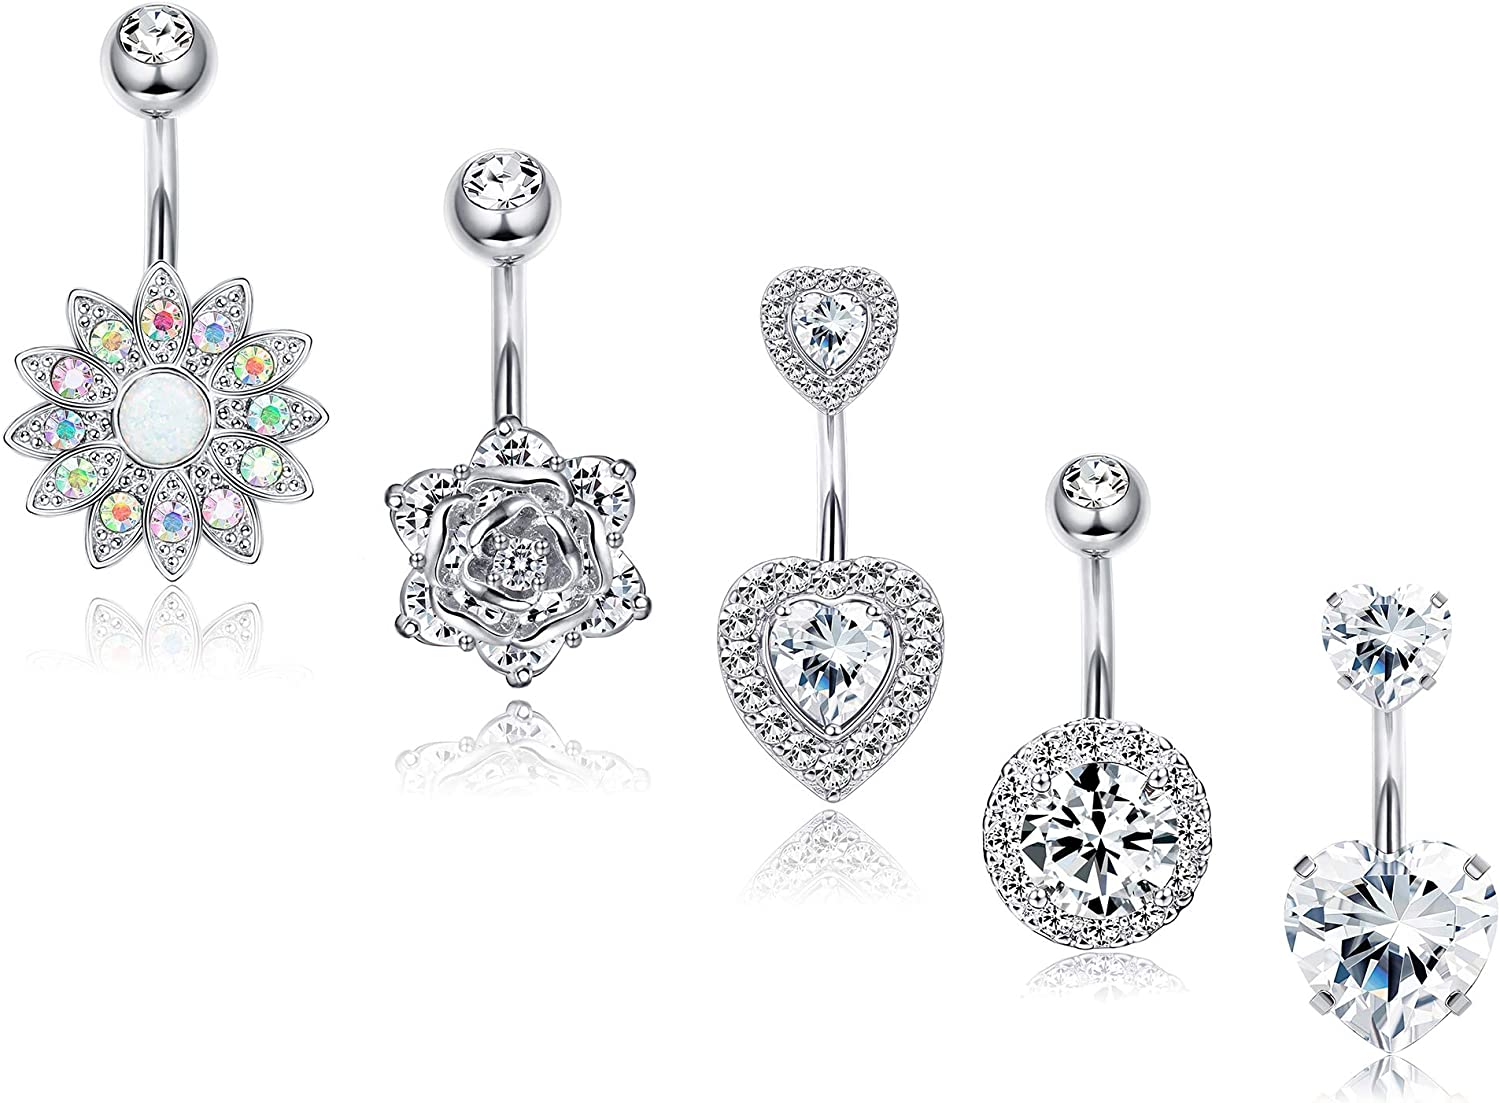 Lt Pink /& Clear cz Flower top Heart bottom Belly button navel Ring piercing bar body jewelry 14g